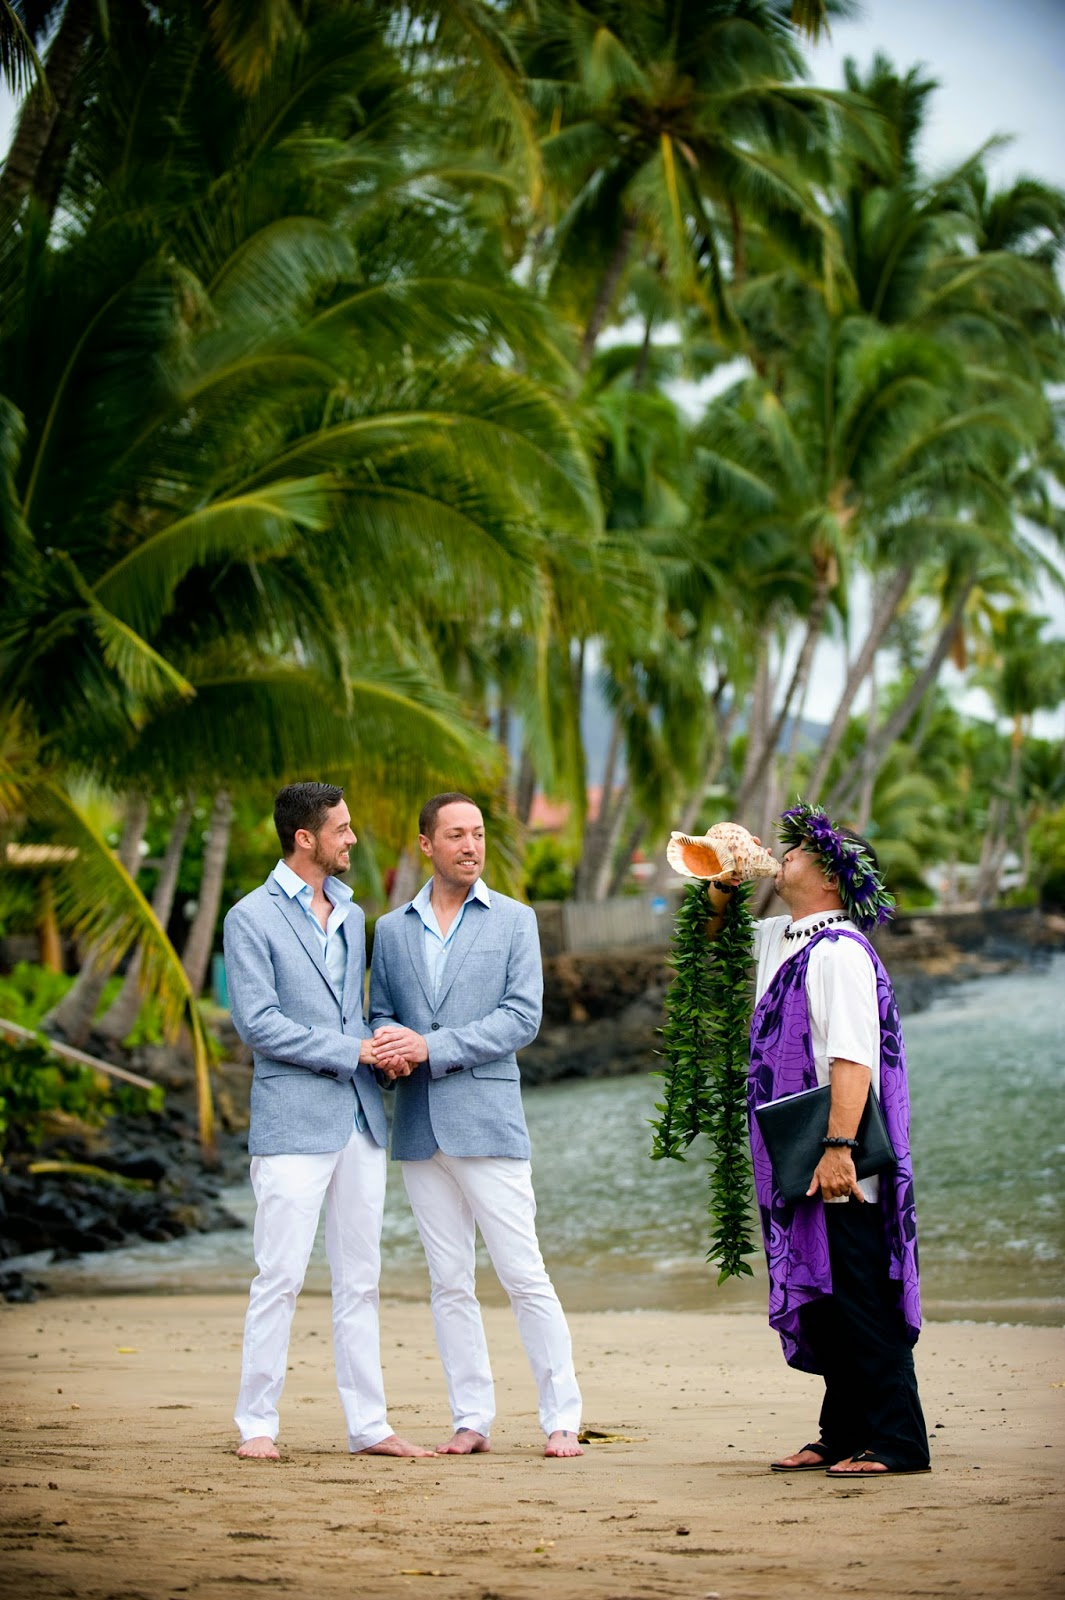 Maui gay weddings, gay weddings maui, maui wedding planners, maui gay wedding planners